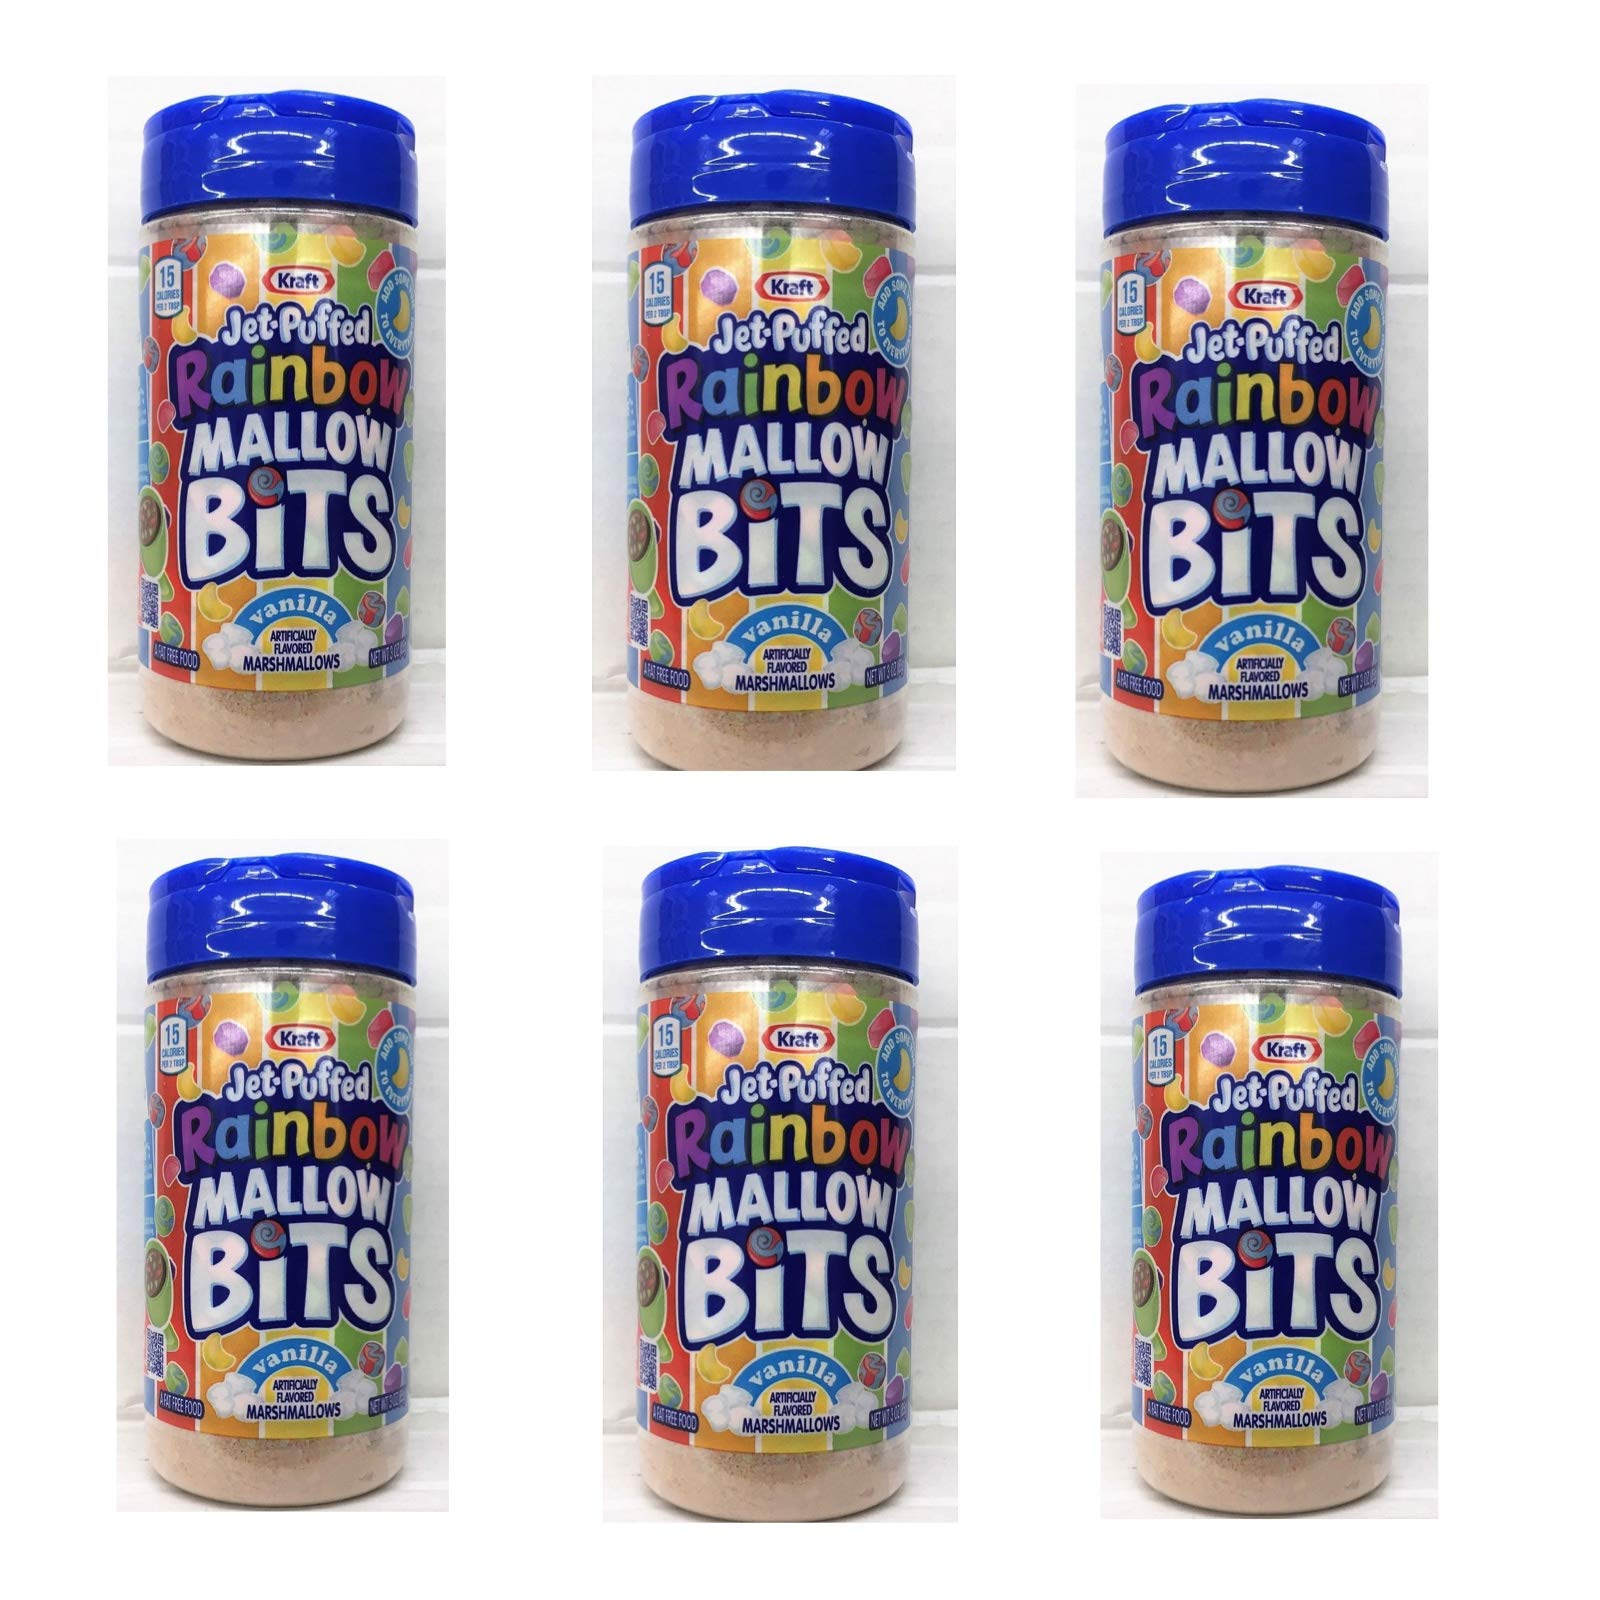 et-Puffed Rainbow Marshmallow Bits, Vanilla 3oz Shaker, count of 6